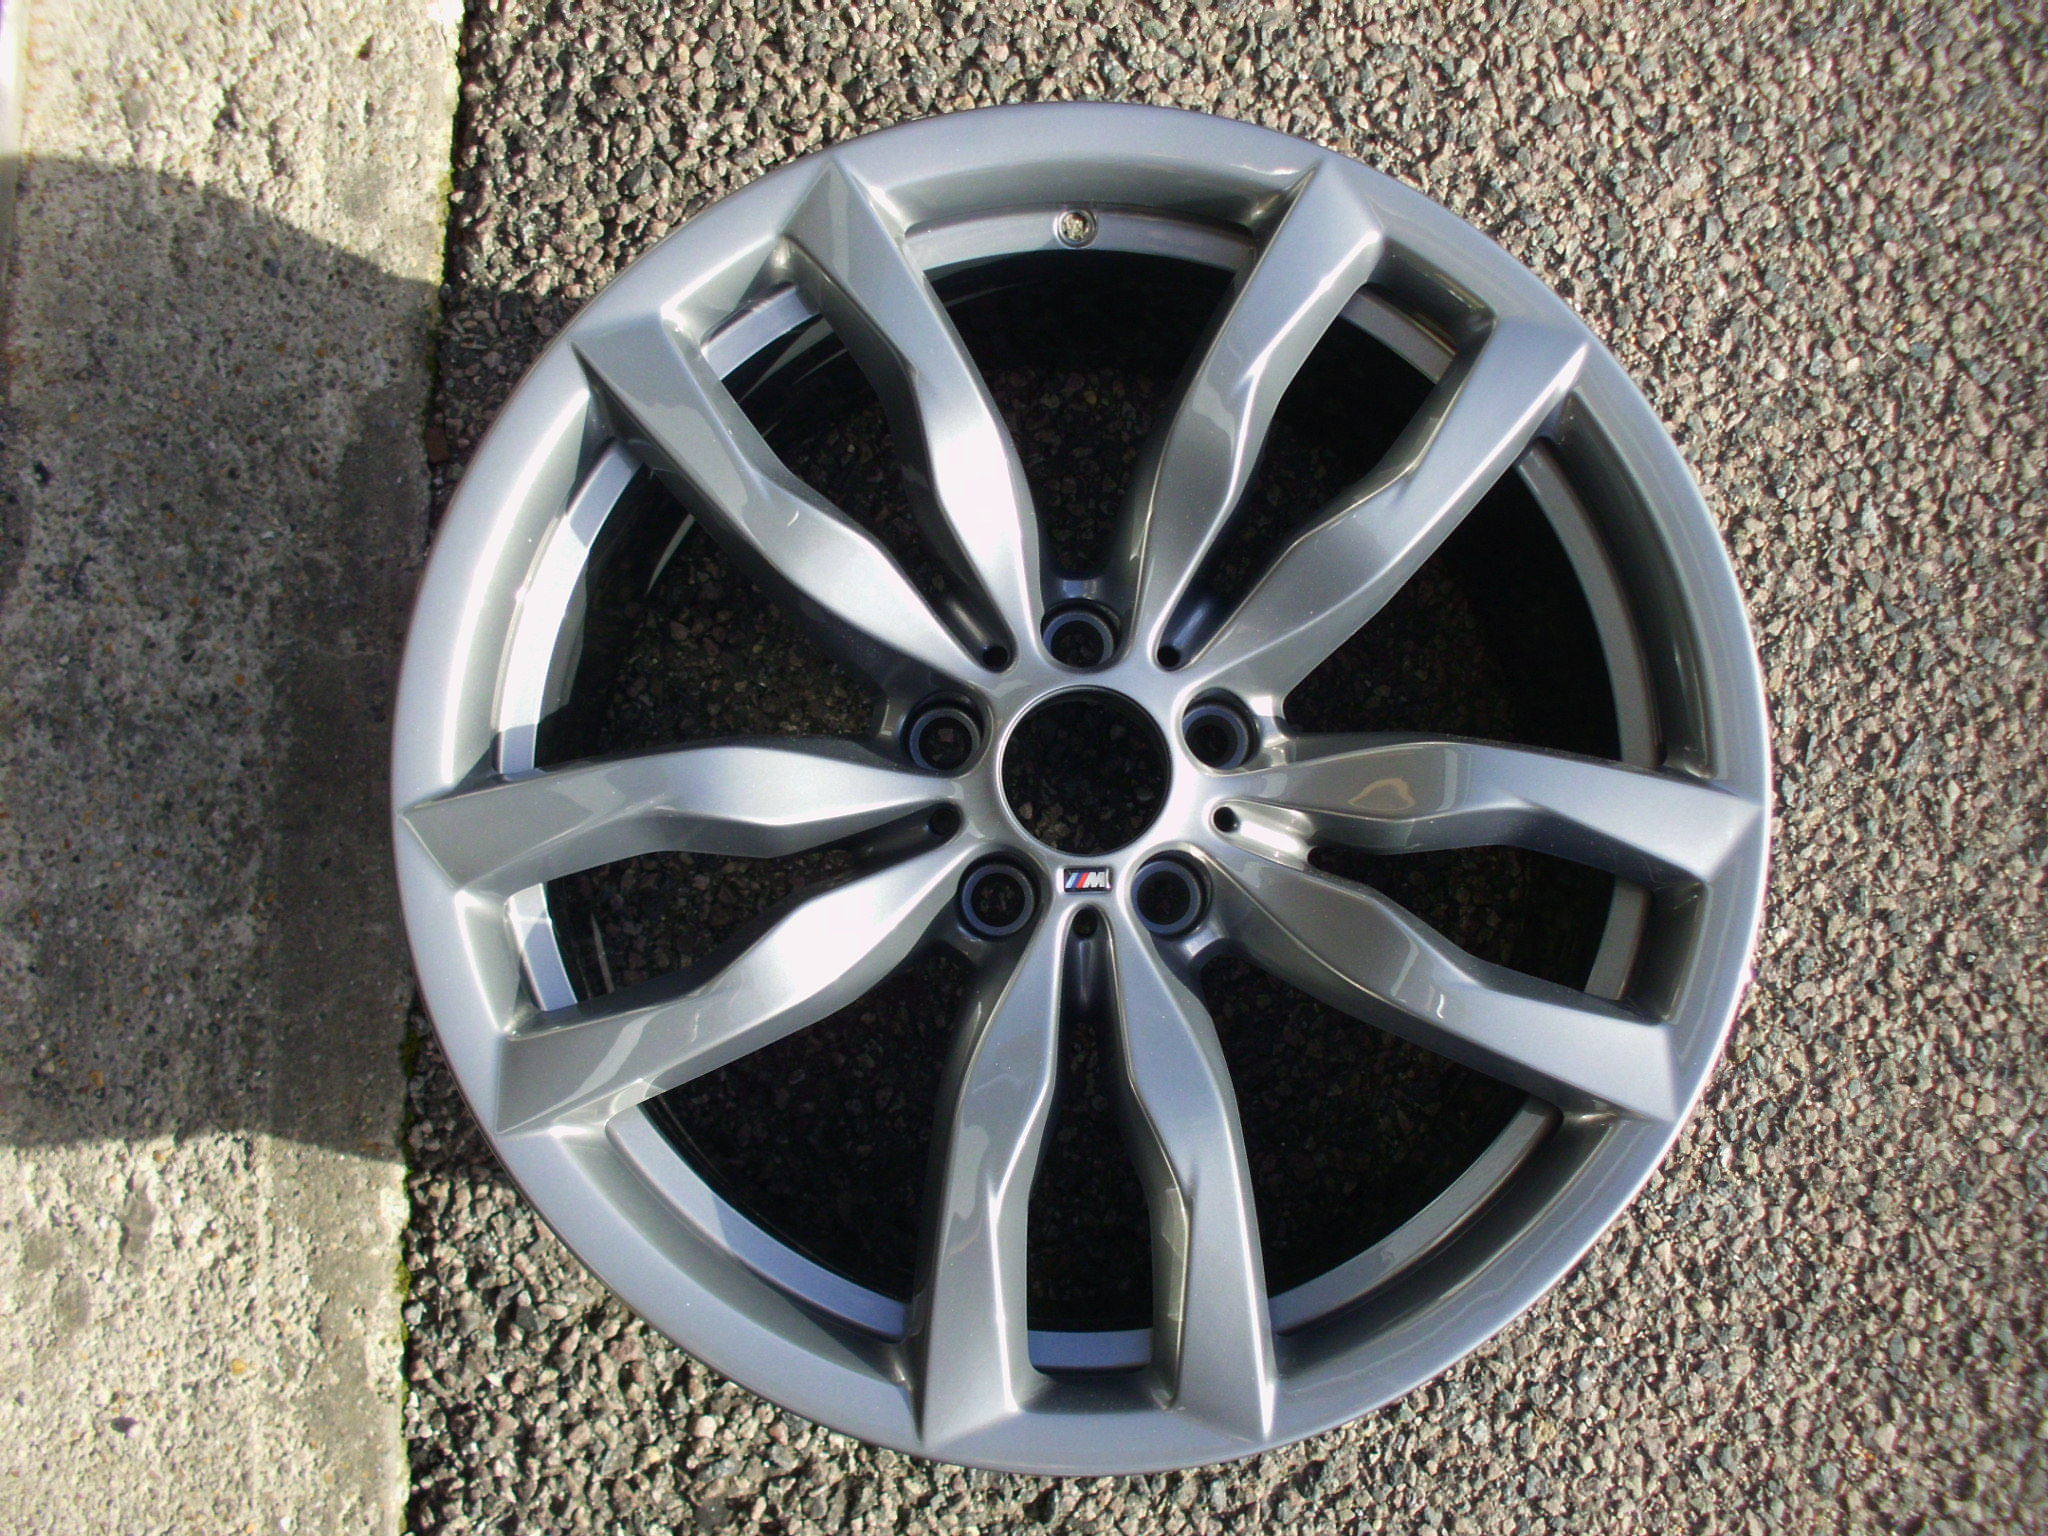 "USED SINGLE 20"" GENUINE BMW E70 X5 FRONT STYLE 435M ALLOY WHEEL, FULLY REFURBISHED IN ORIGINAL FERRIC GREY"